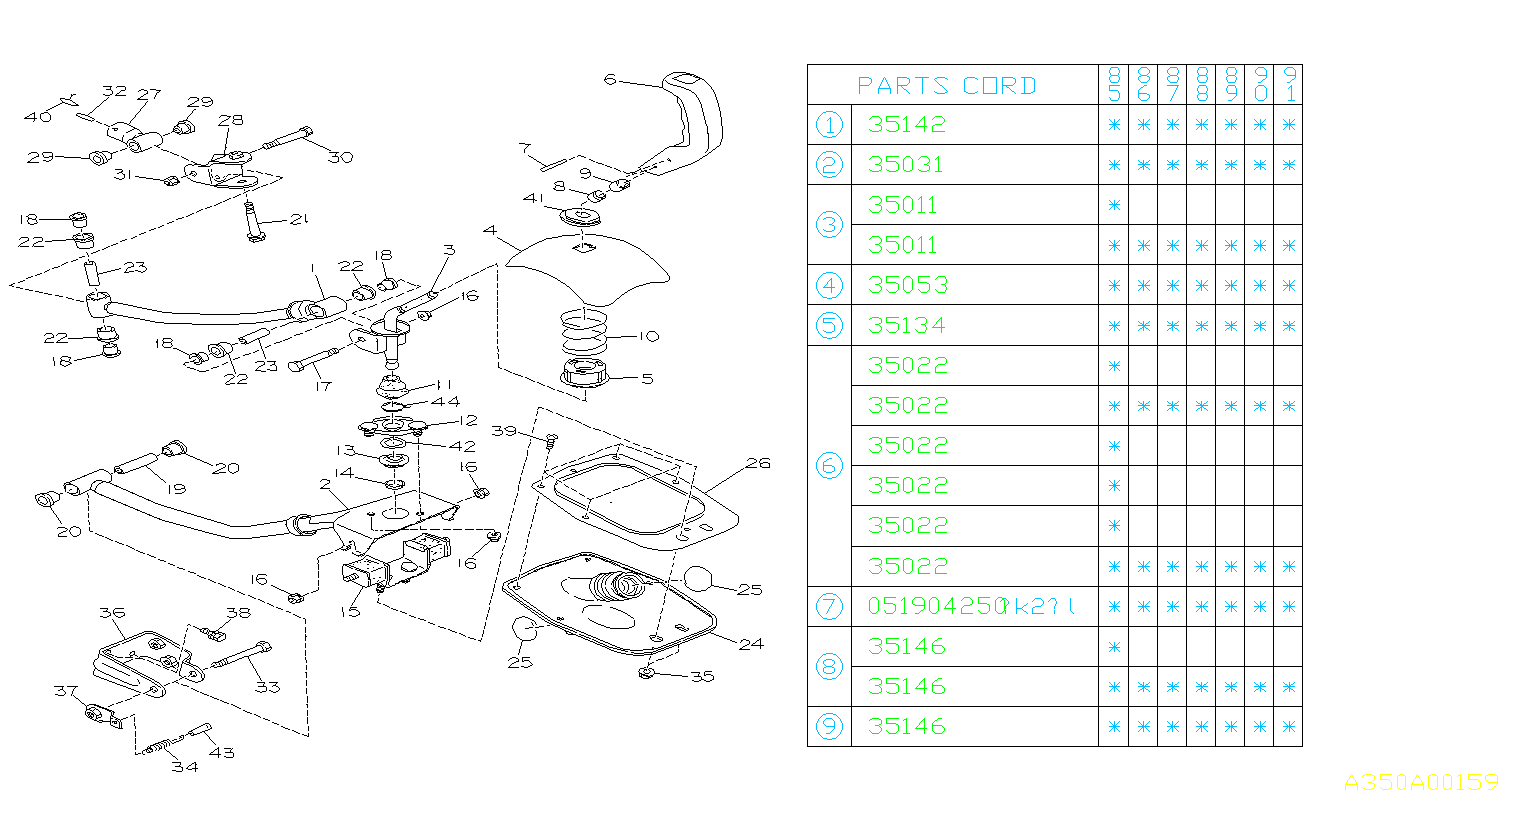 Diagram MANUAL GEAR SHIFT SYSTEM. 2WD. for your Subaru